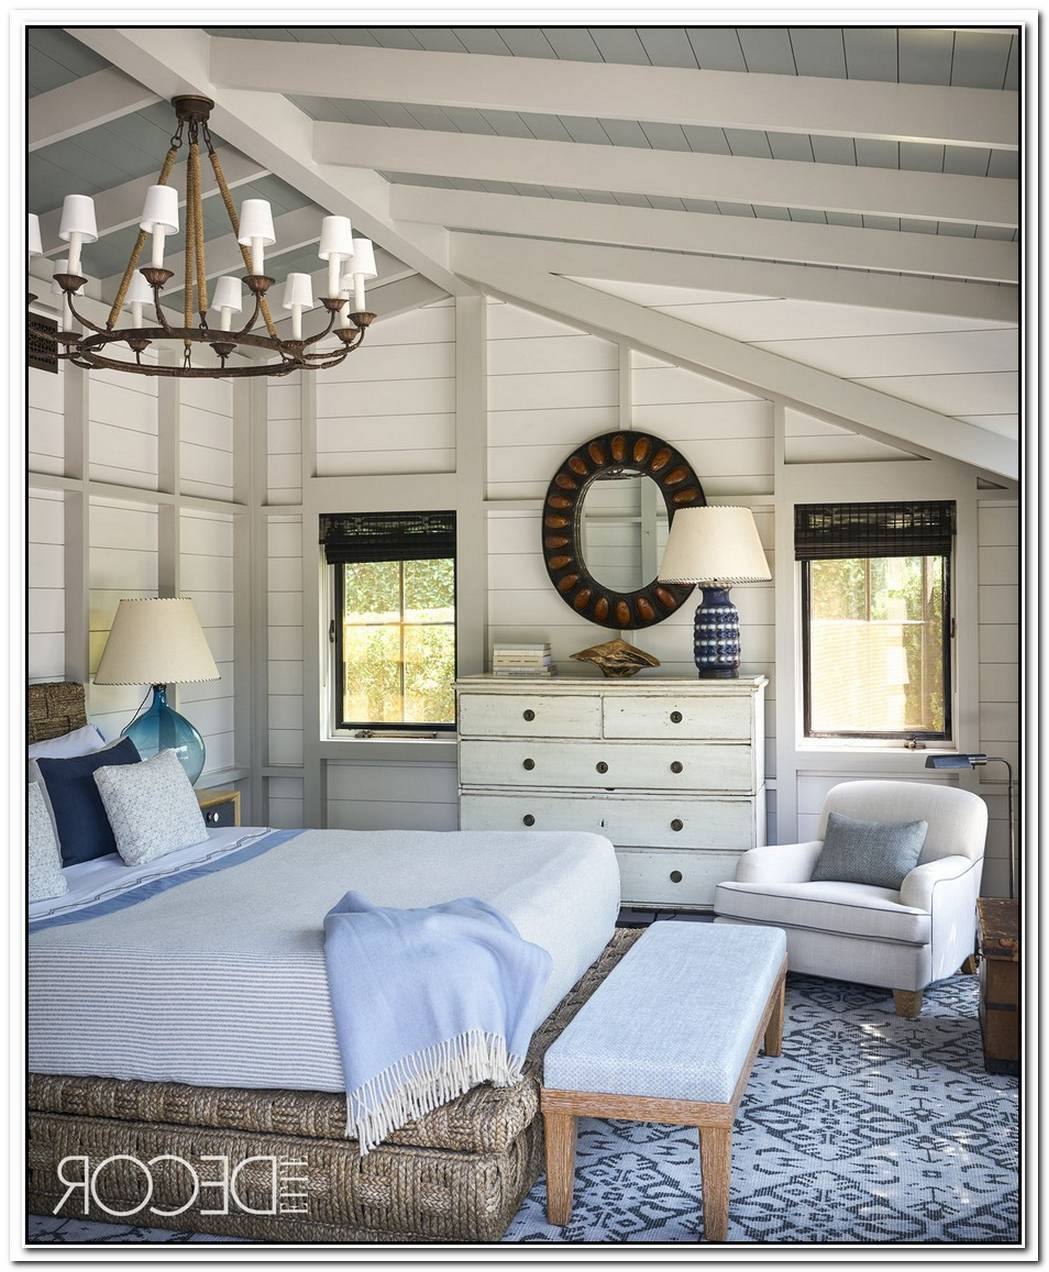 Bedroom Lighting Types And Ideas For A Relaxing And Inviting Décor